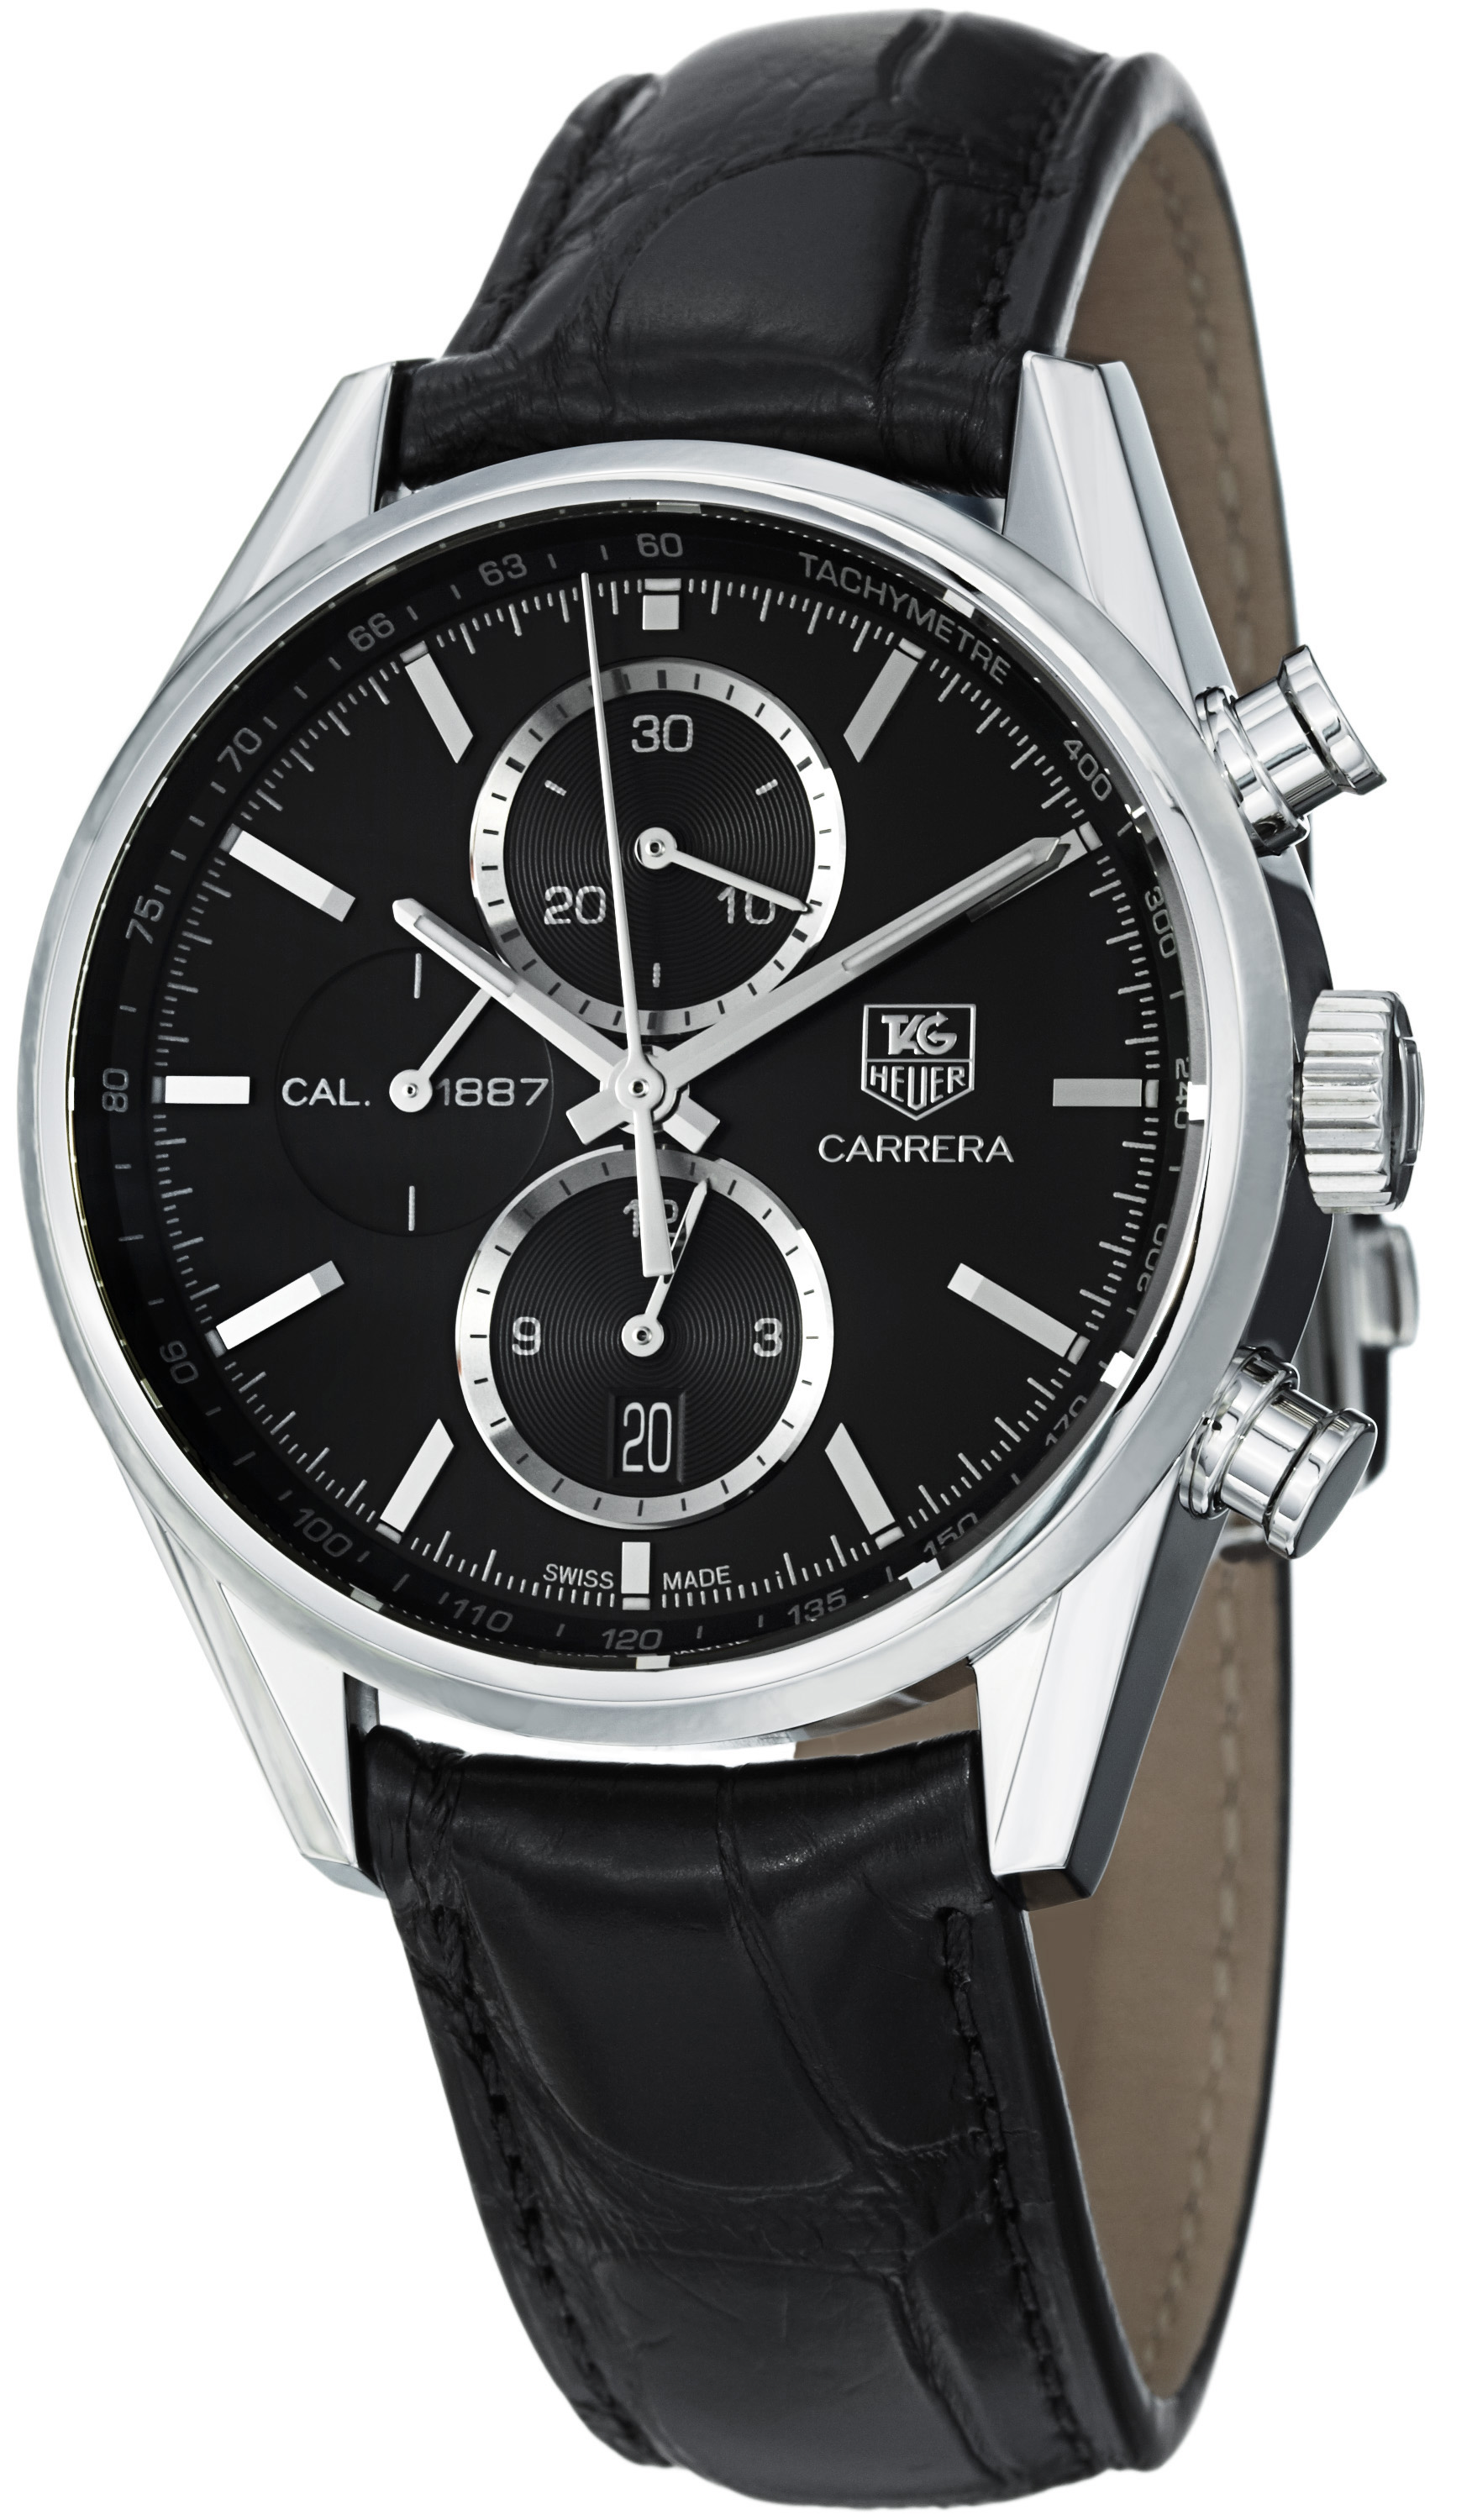 automatic watches mens heuer click close chronograph and us mrp carrera xxl watch to brushed en steel leather tag in